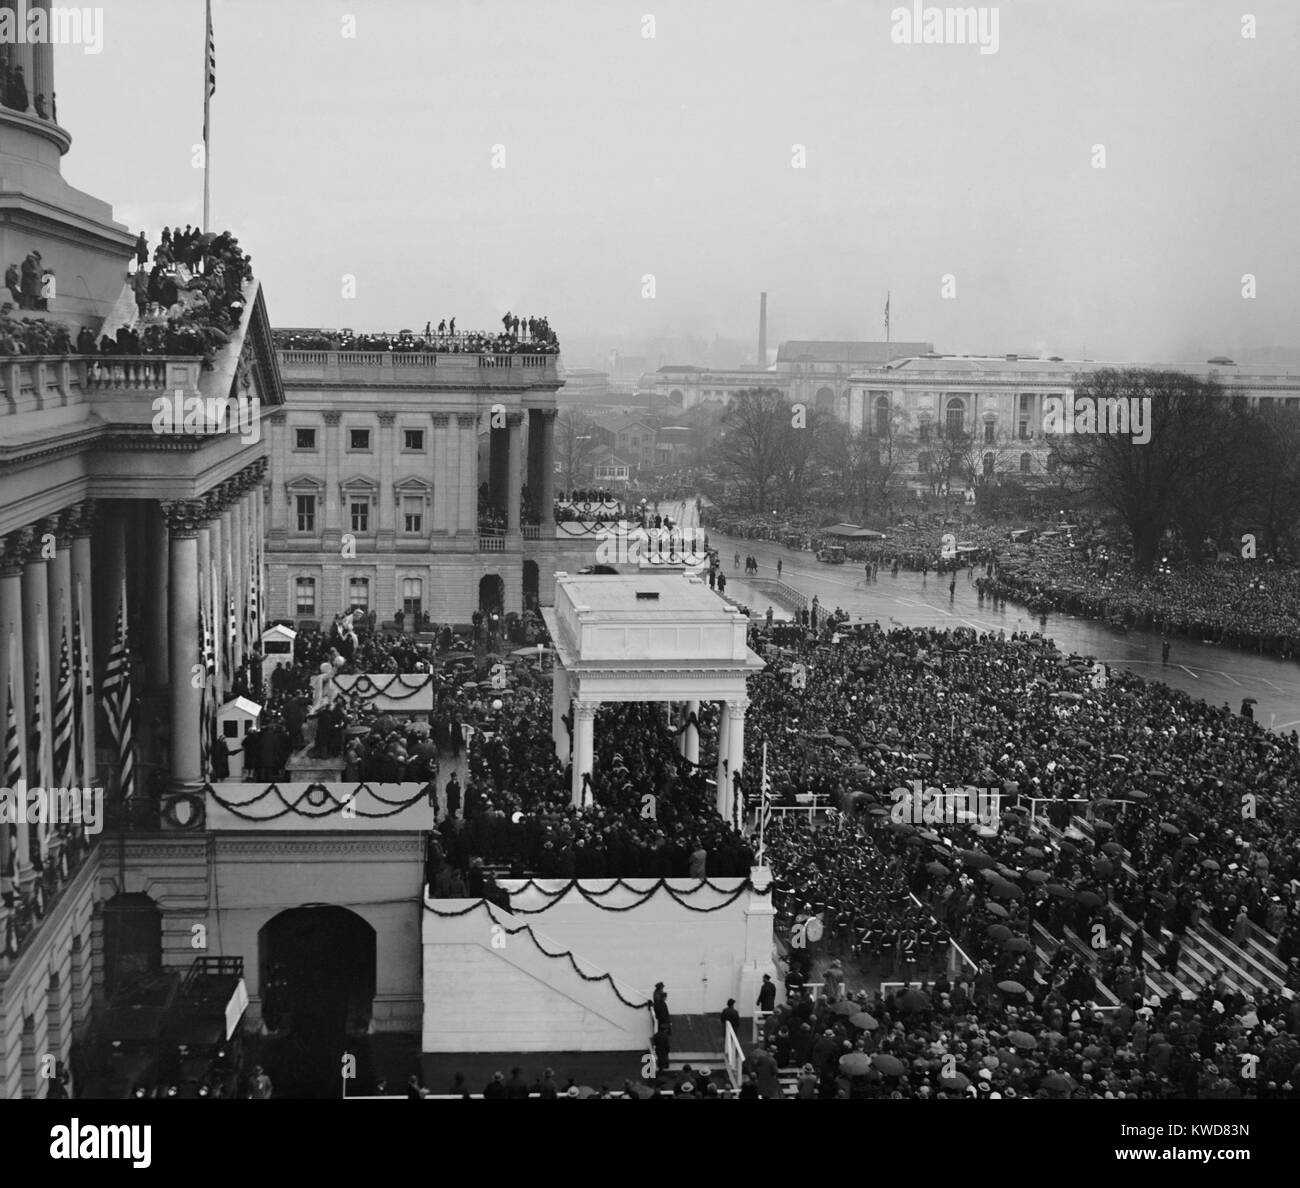 View of the Capitol and crowds at the Inauguration of